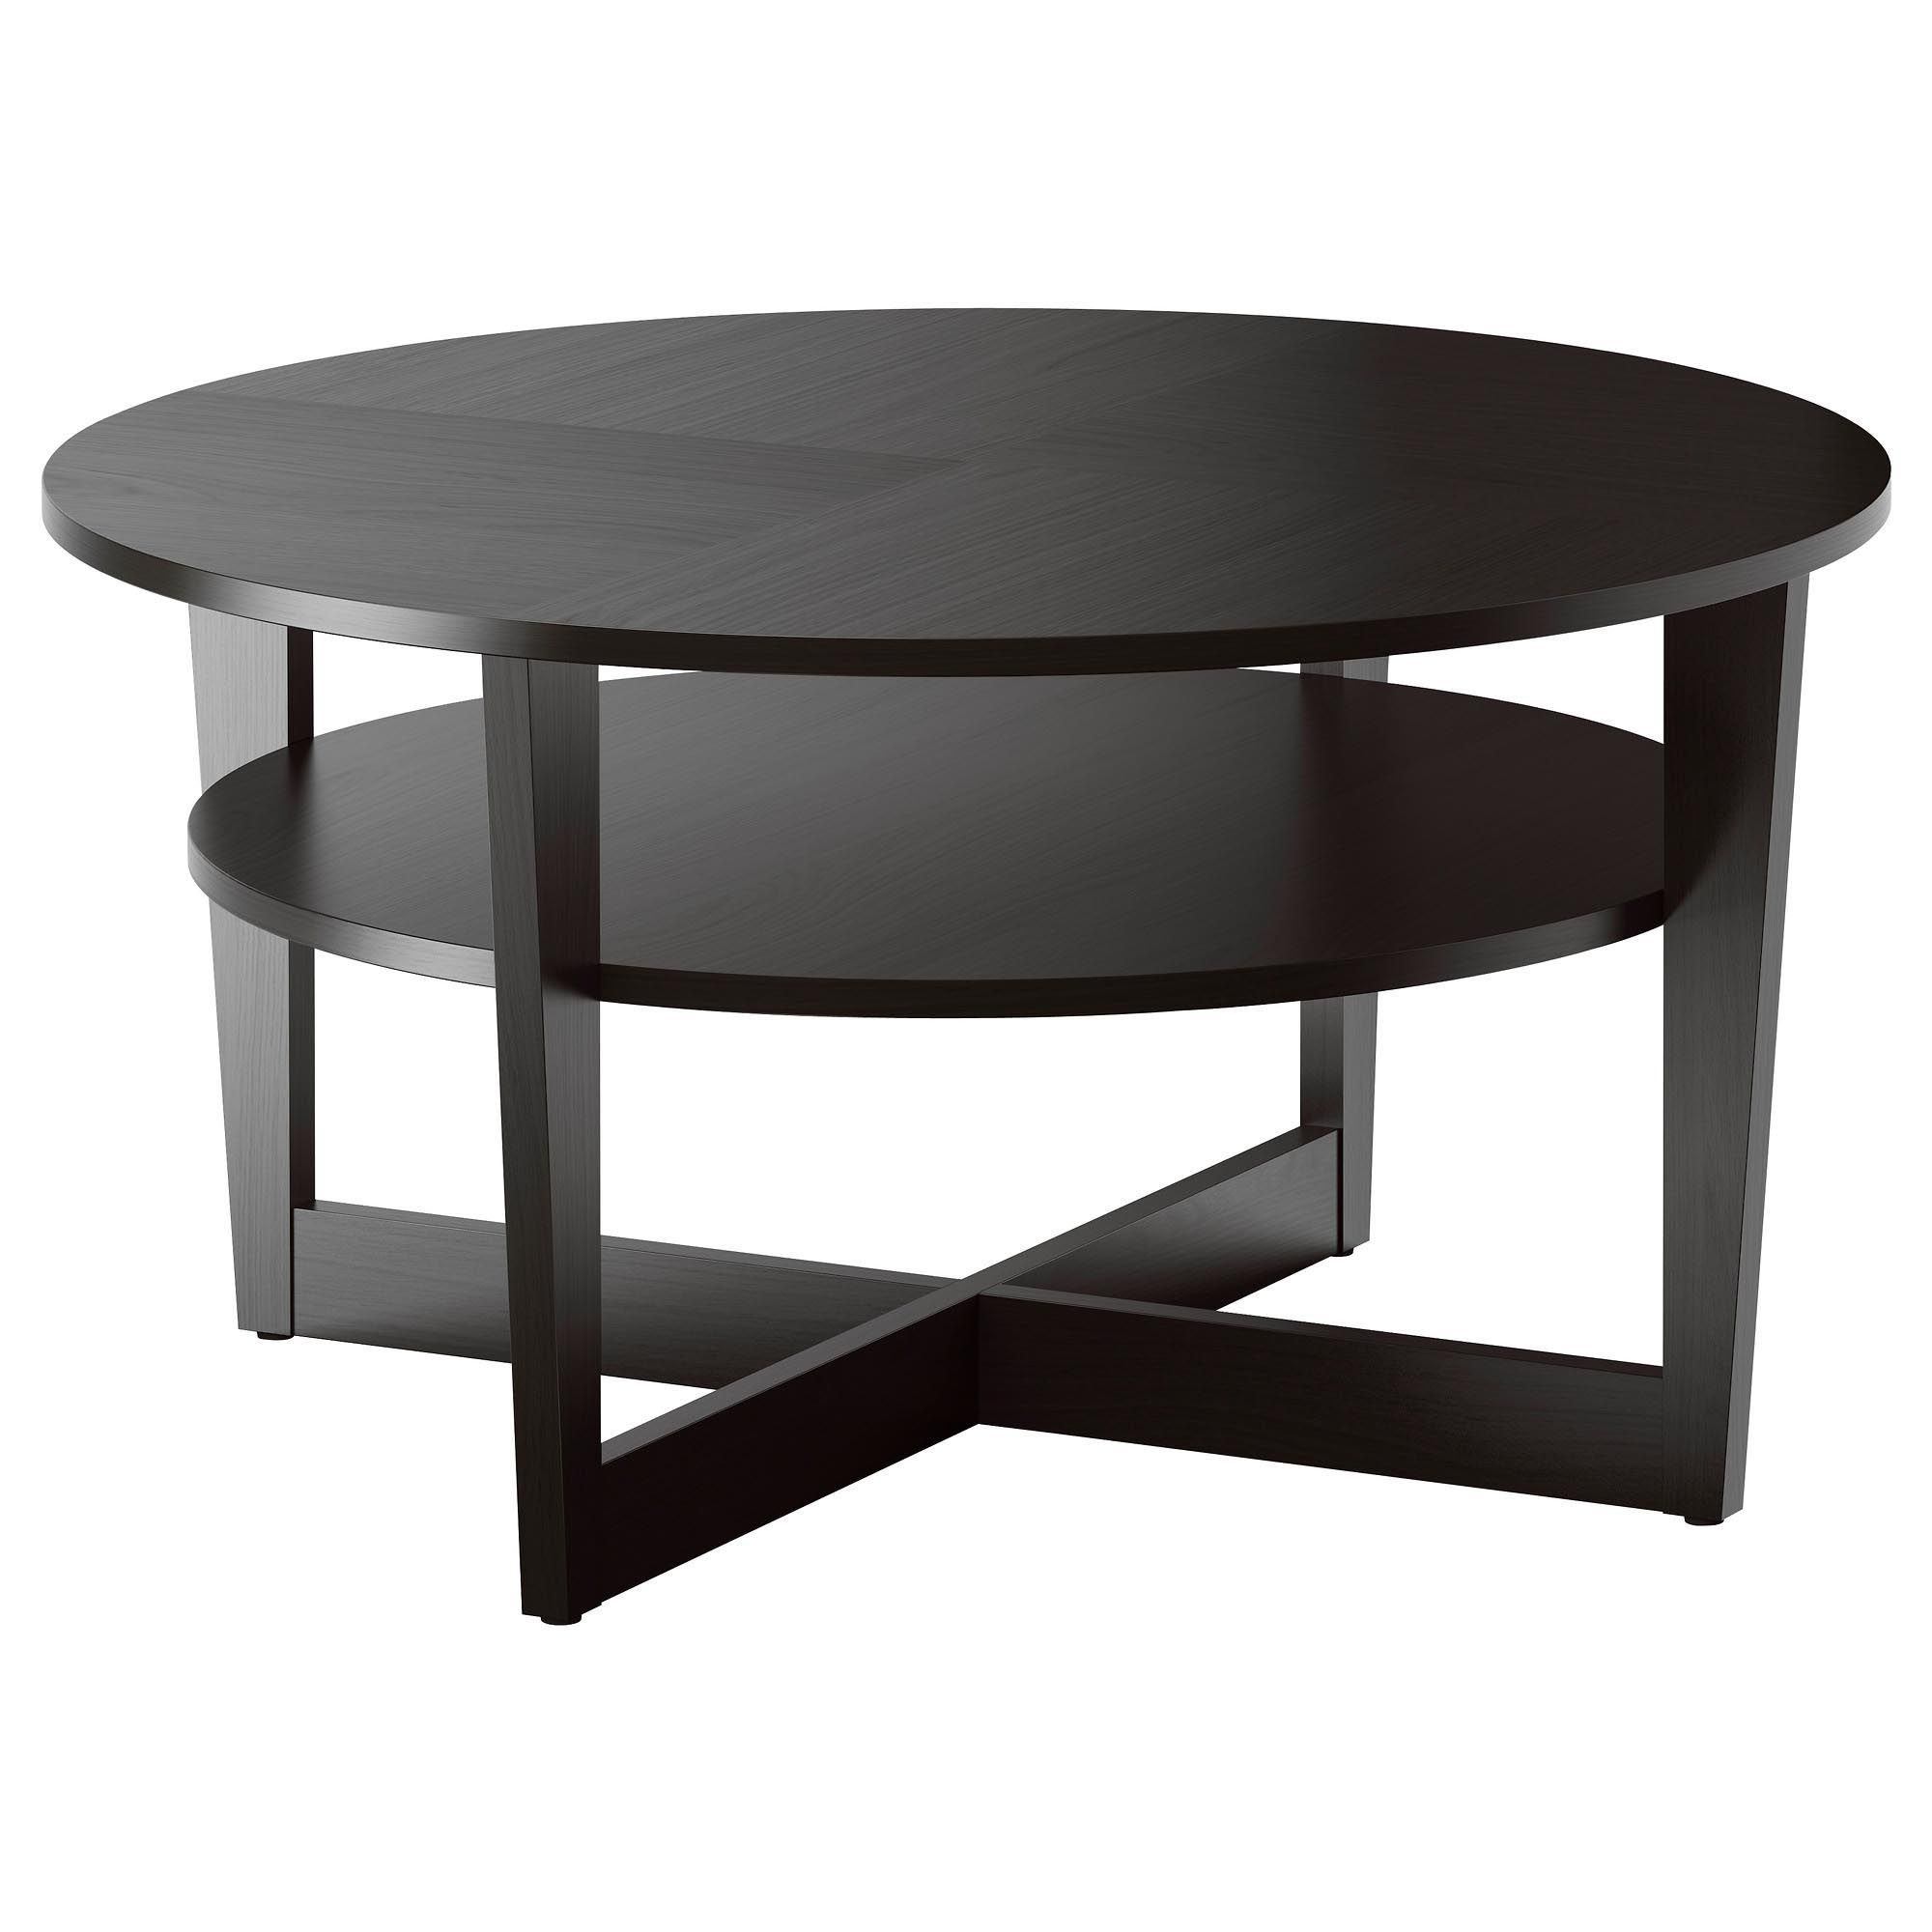 round coffee table ikea Round Coffee Table IKEA | For the Home | Pinterest | Table, Ikea  round coffee table ikea